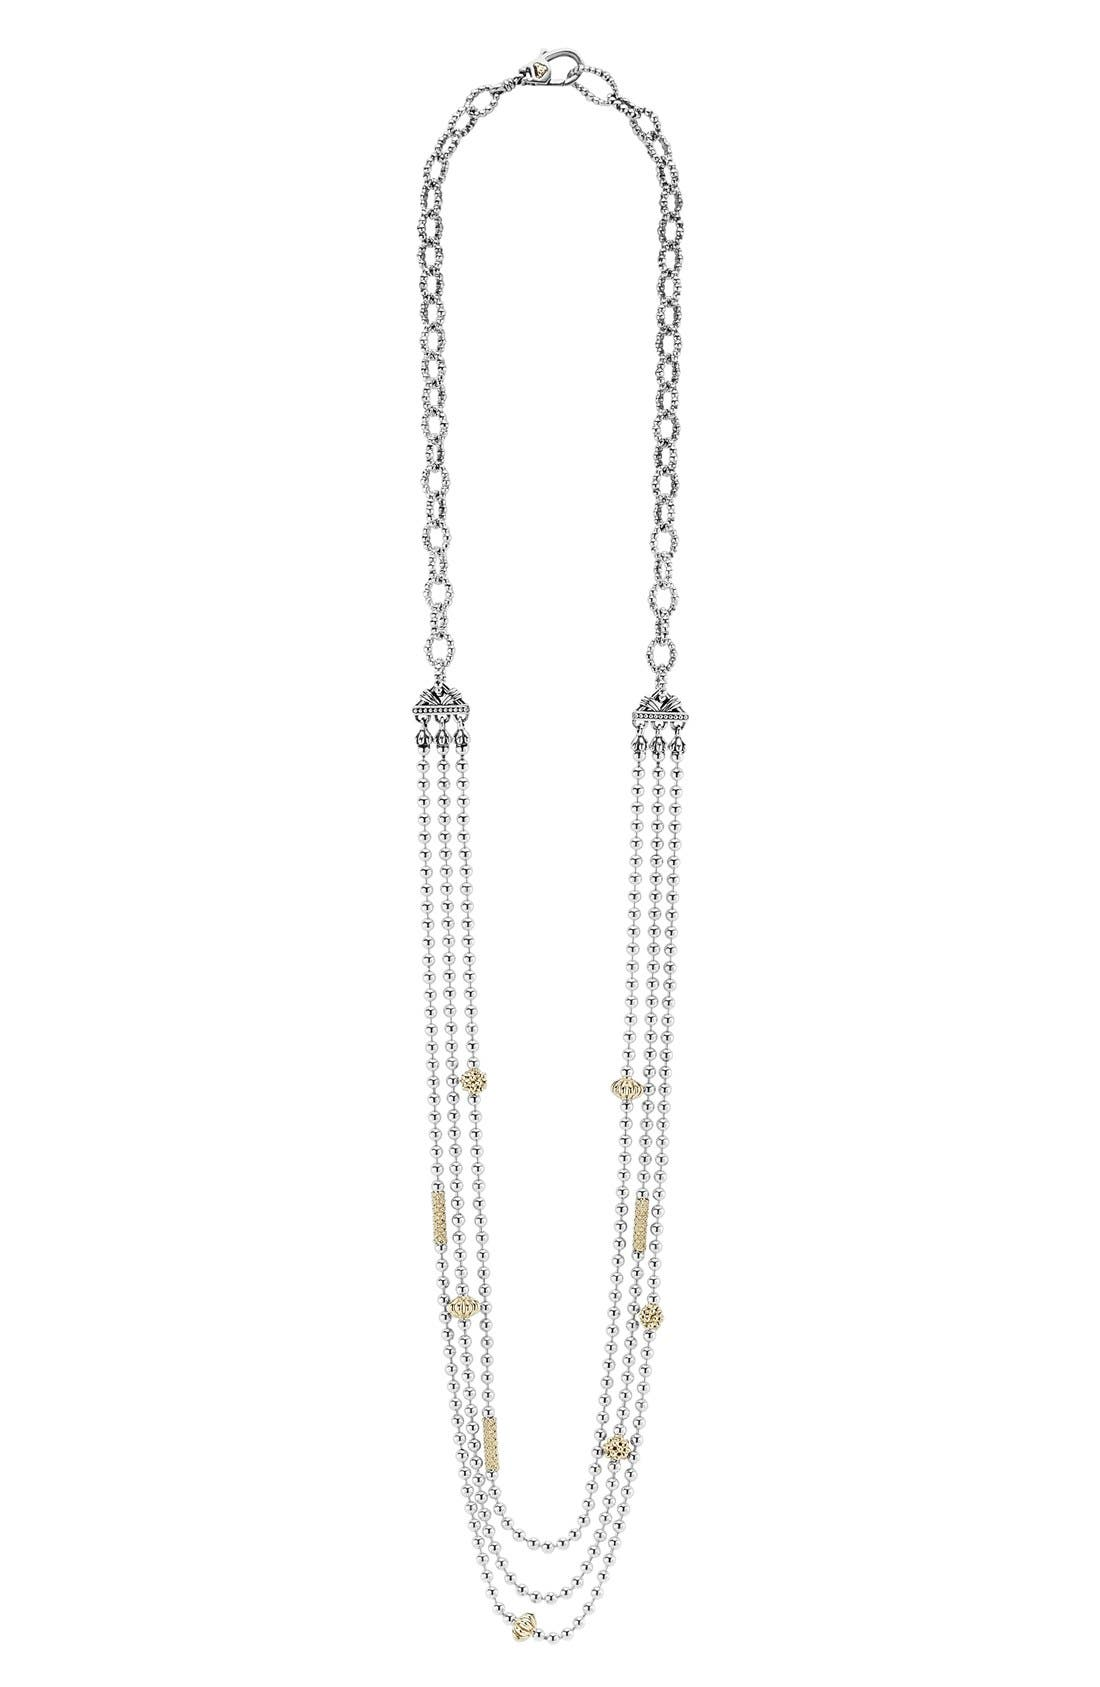 Alternate Image 1 Selected - LAGOS 'Caviar Icon' Multistrand Necklace